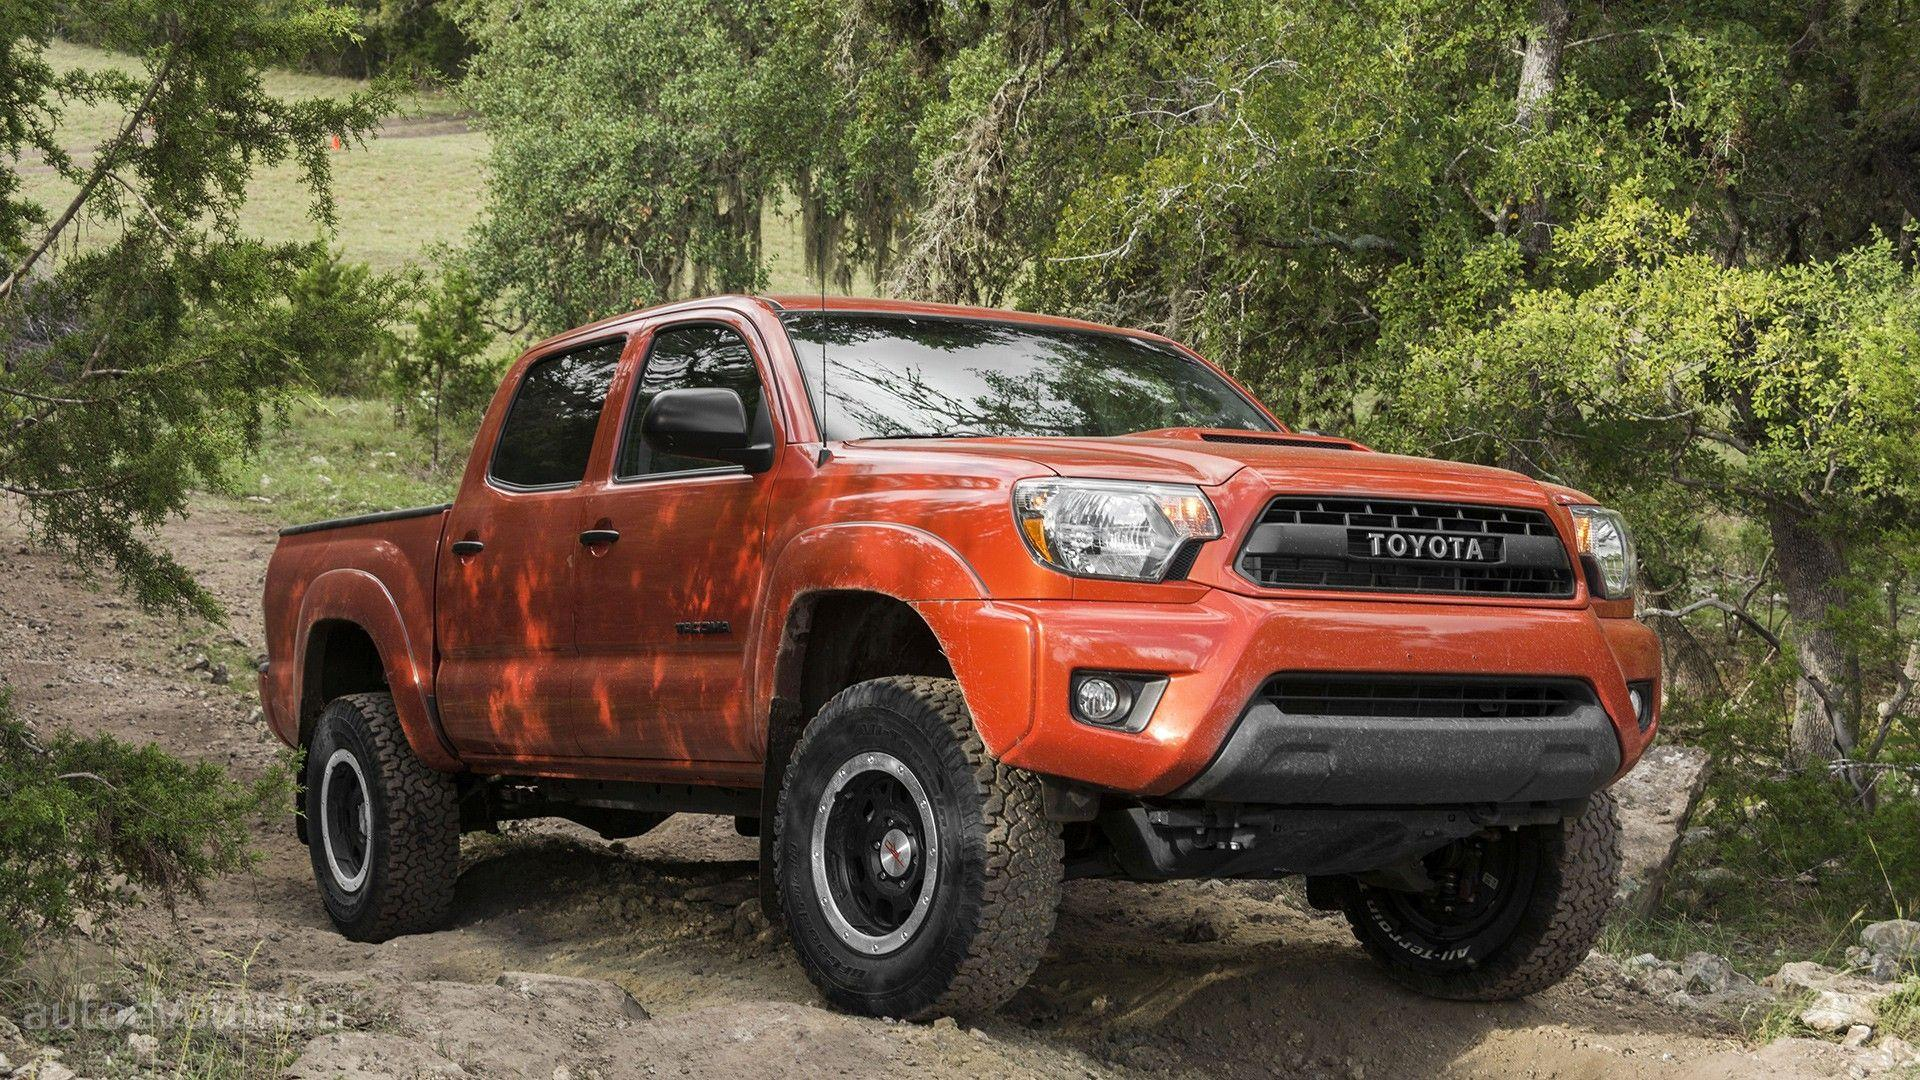 2015 Toyota Tacoma TRD Pro HD Wallpapers: Conquering Jurassic